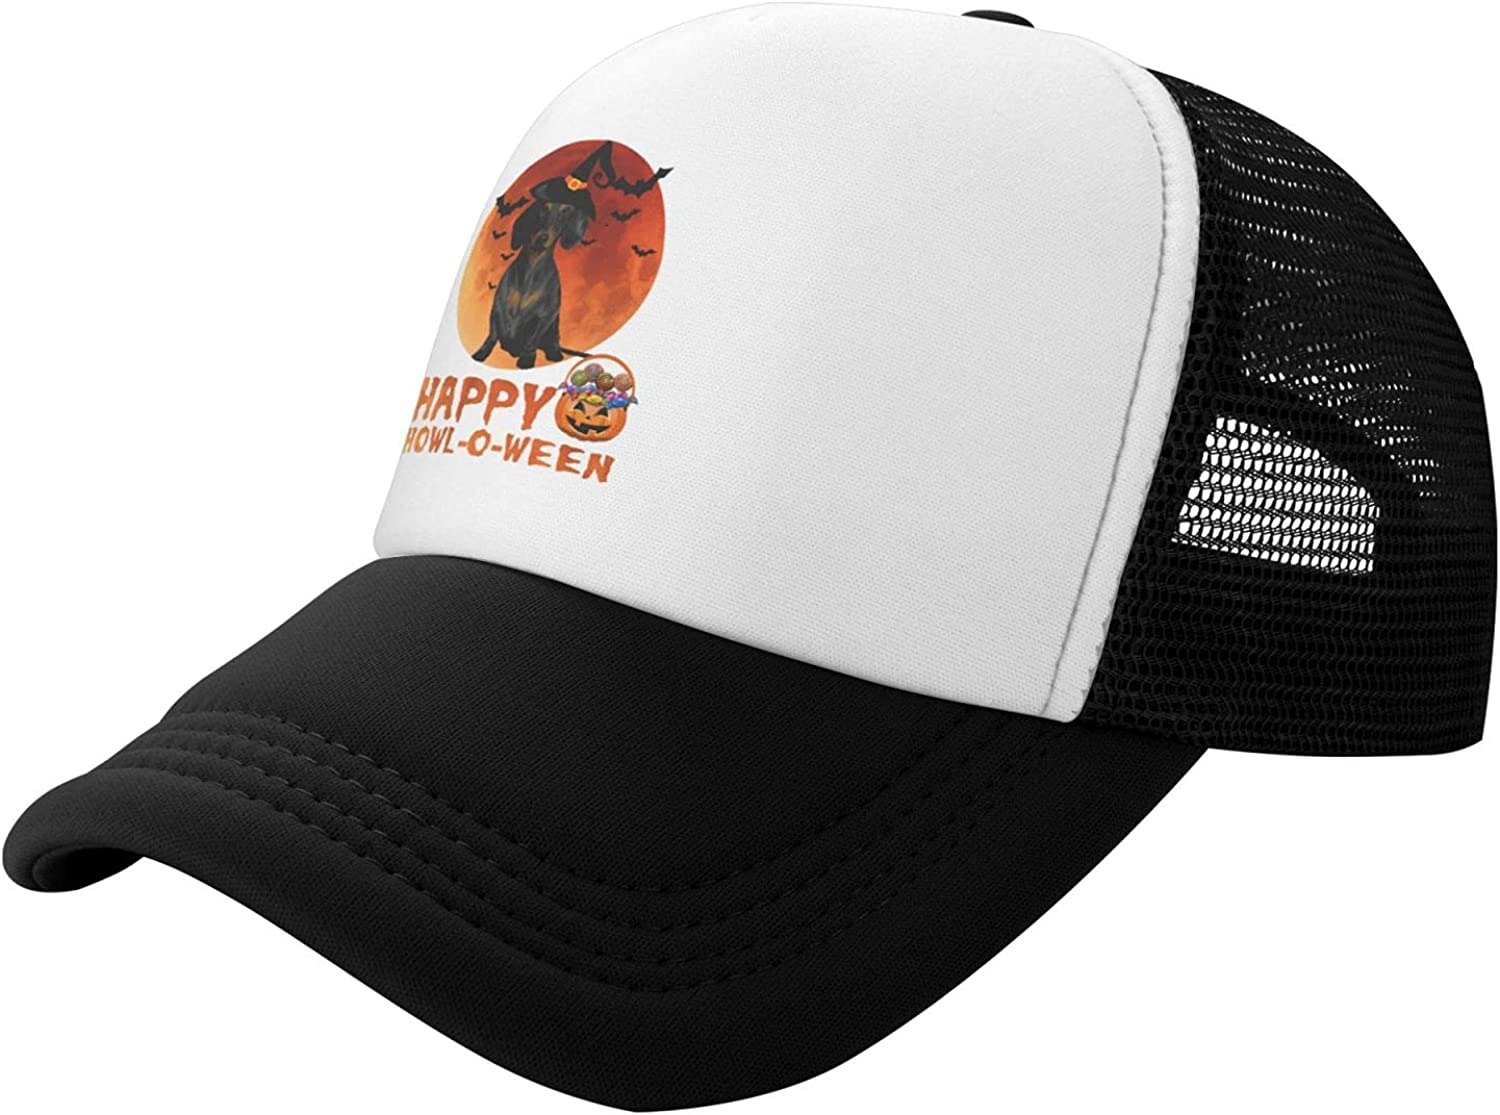 Summer Mesh Limited Special Price Baseball Cap Indianapolis Mall Happy for Howl-O-Ween Hat Funny Trucker